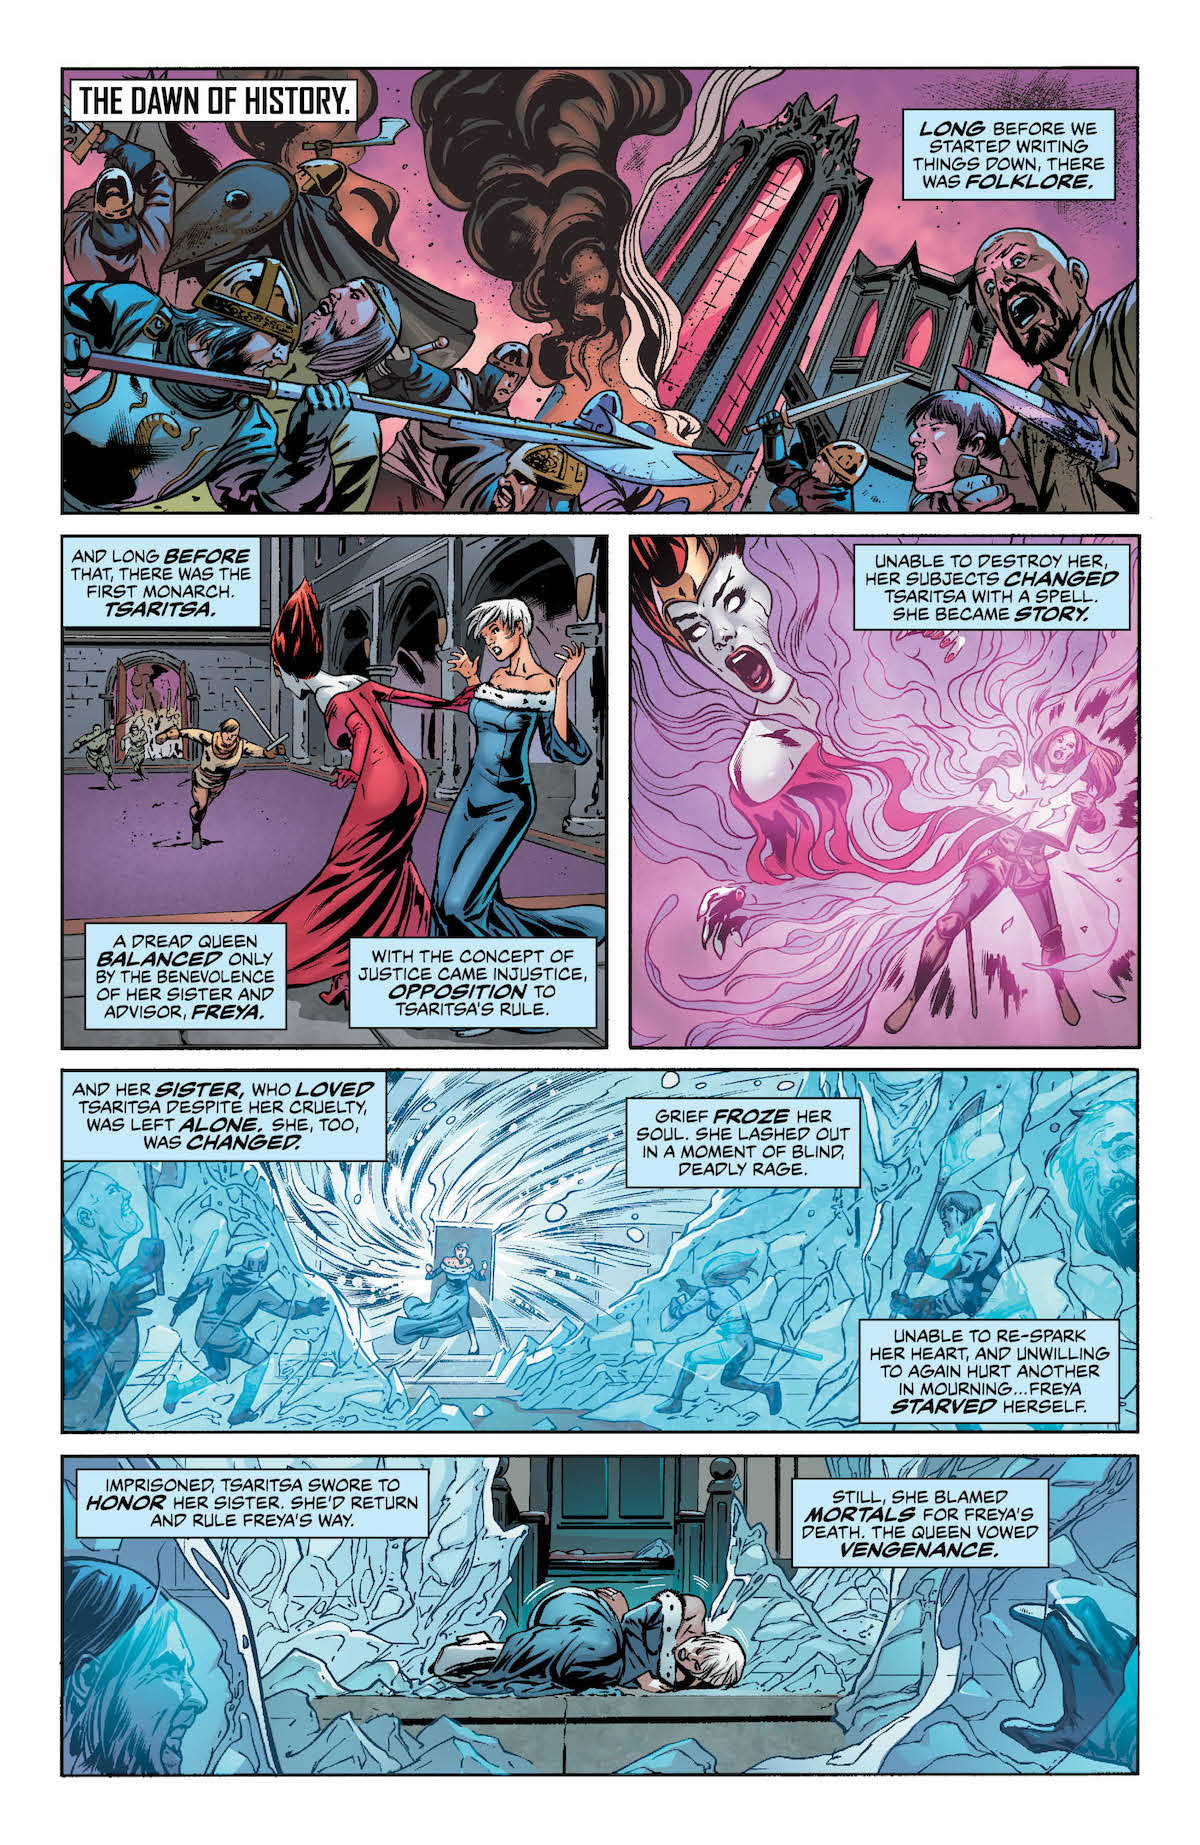 Justice League of America #23 page 1